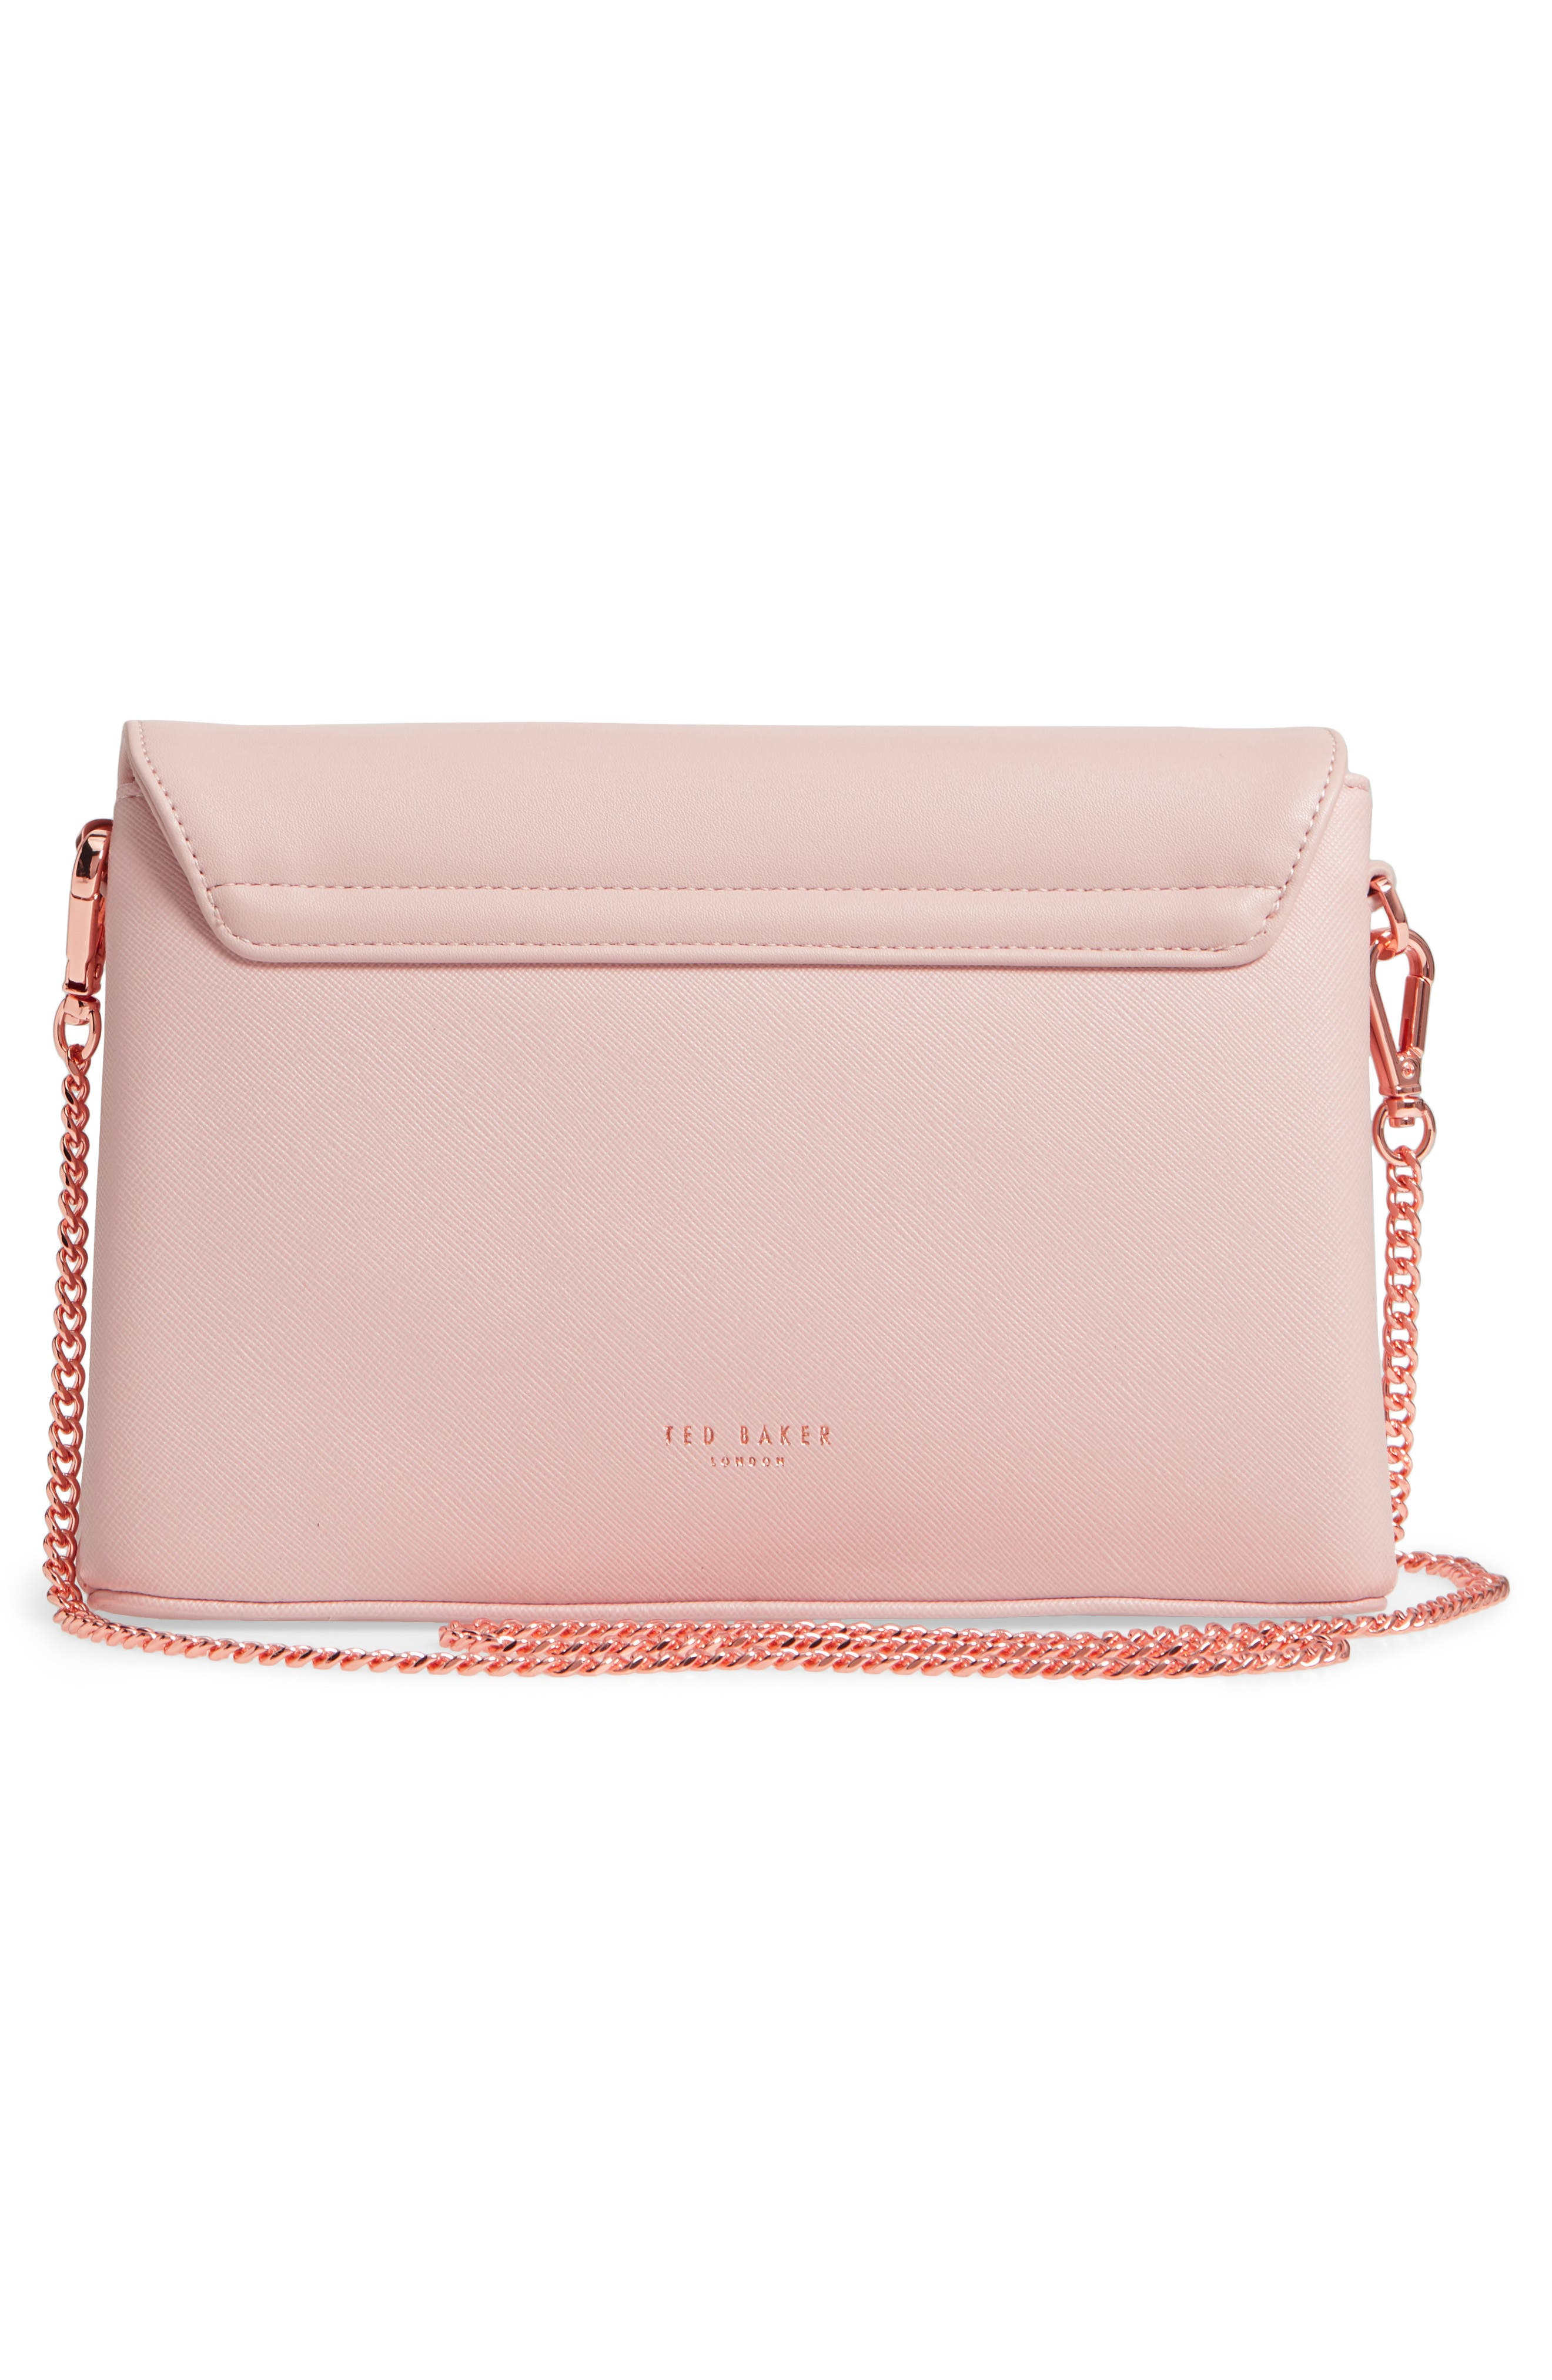 Faux Leather Crossbody Bag,                             Alternate thumbnail 3, color,                             Nude Pink